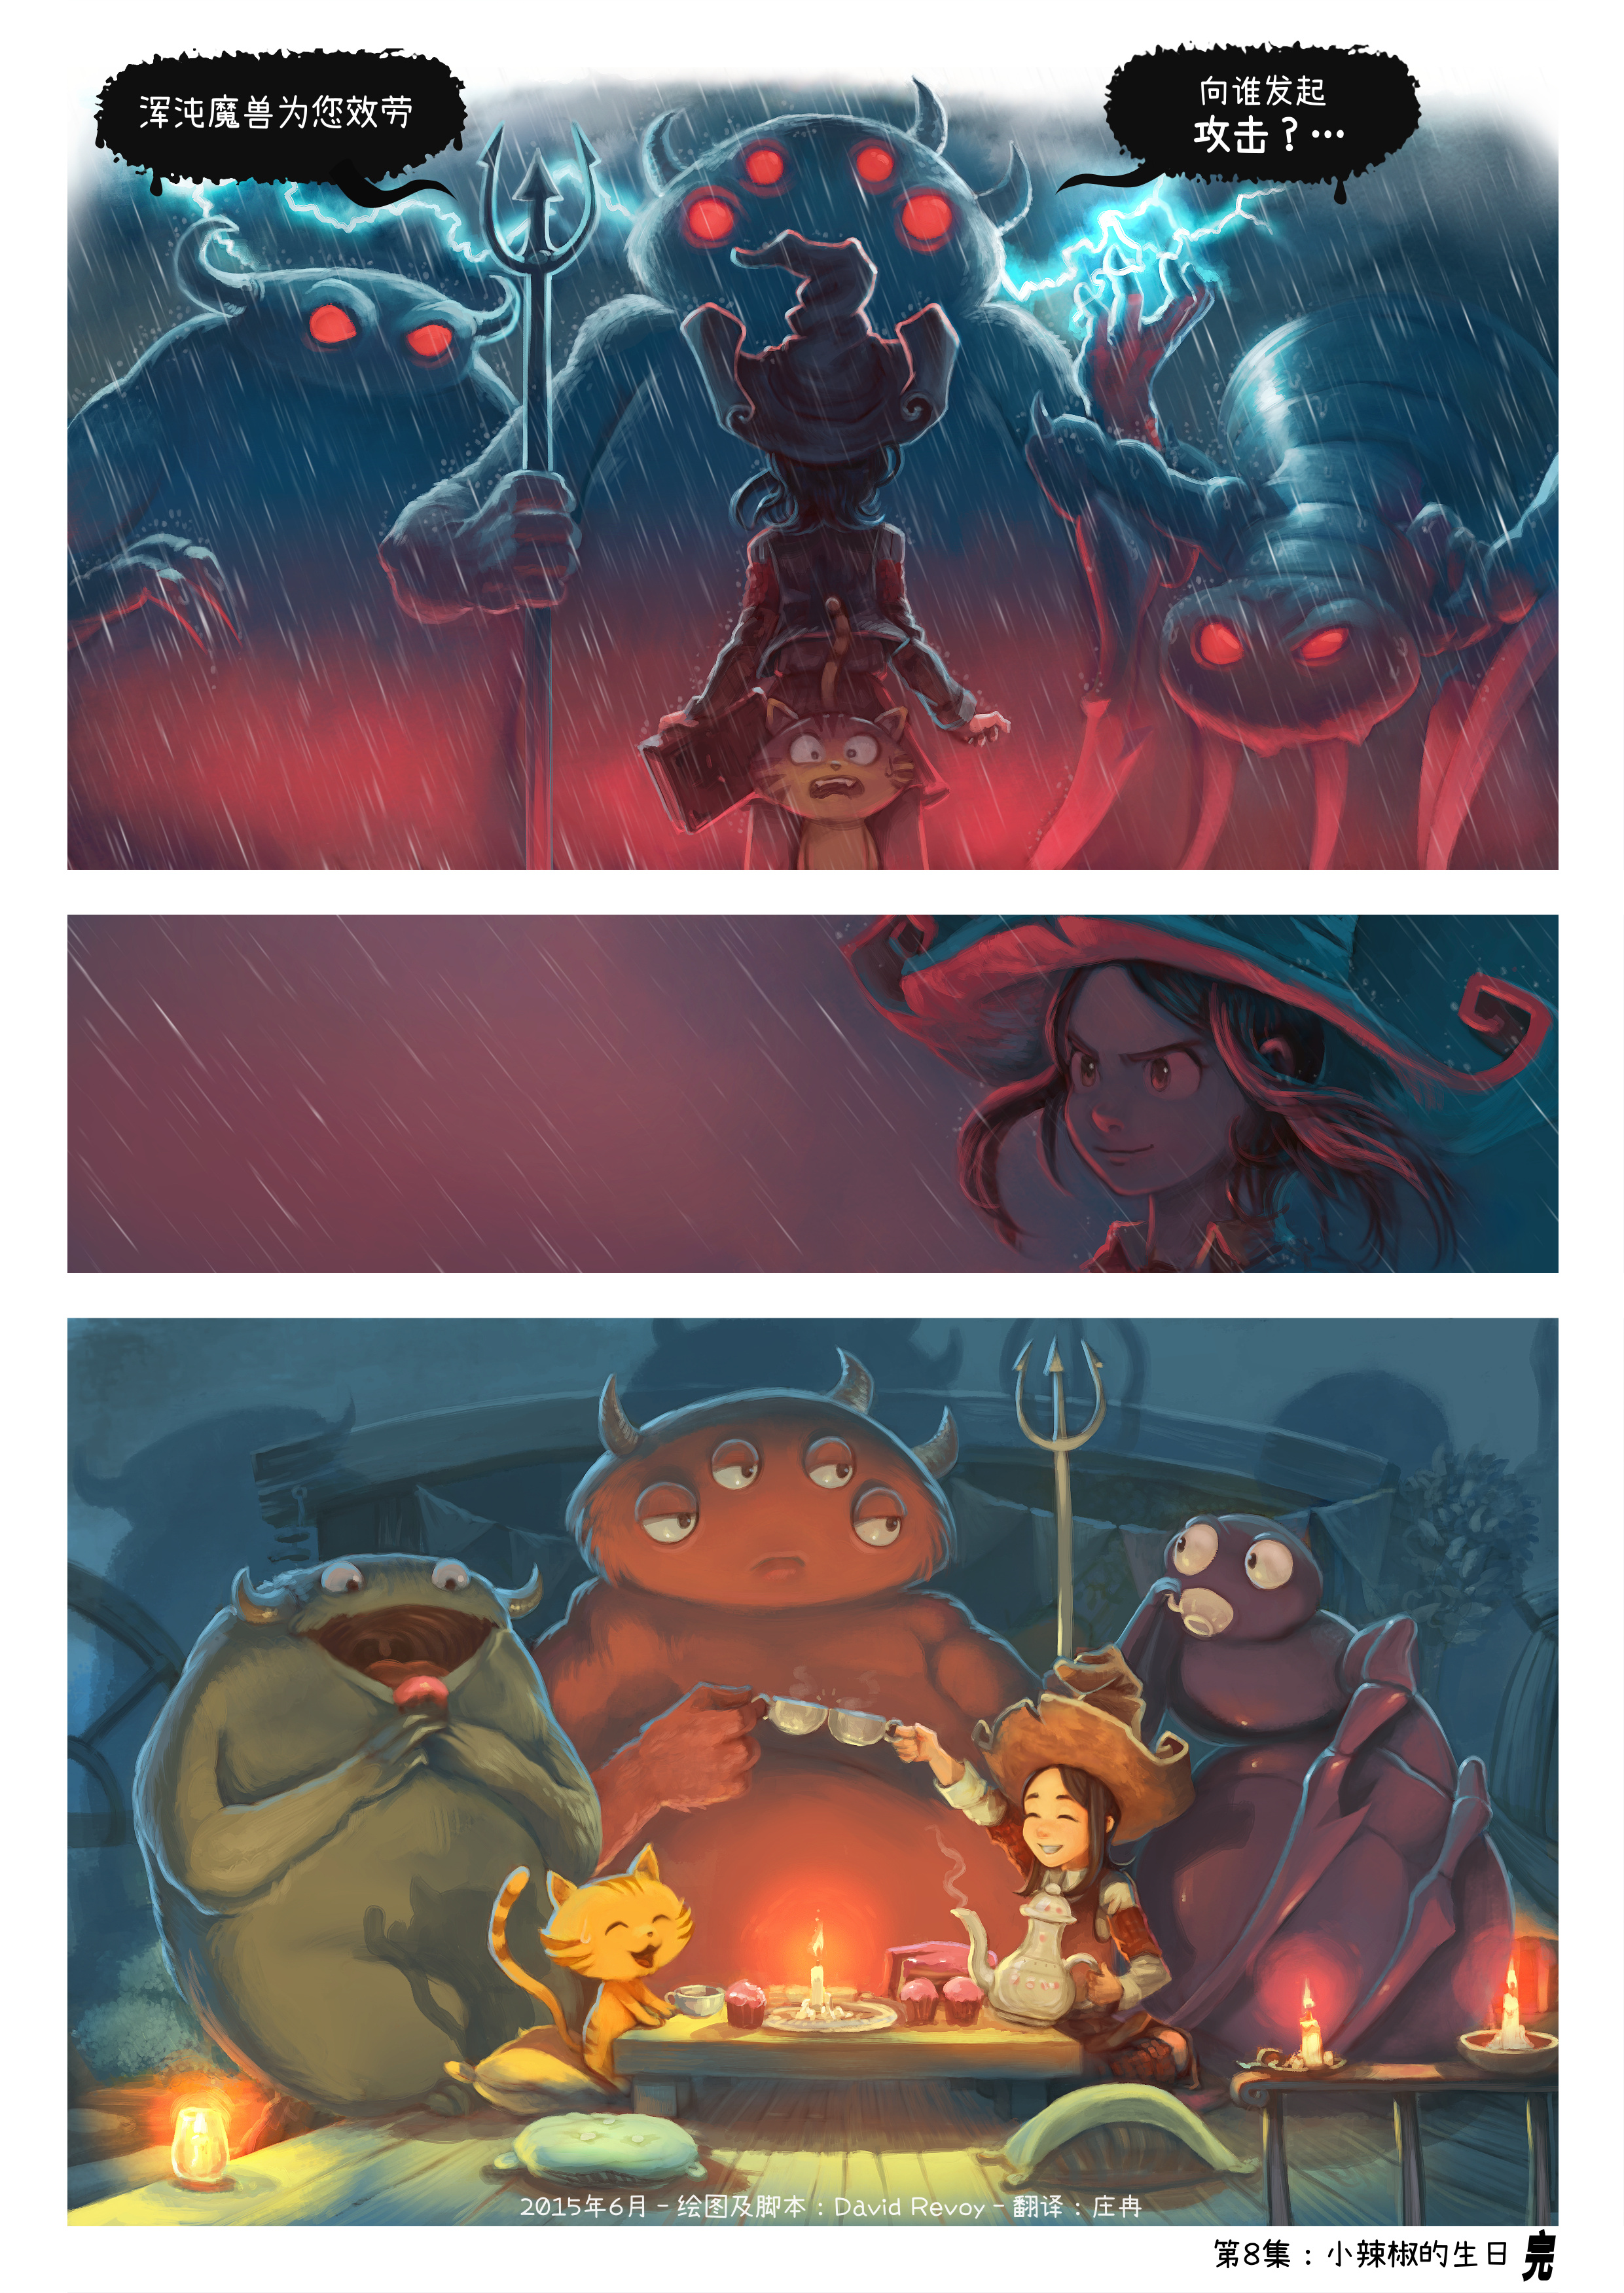 A webcomic page of Pepper&Carrot, 漫画全集 8 [cn], 页面 6